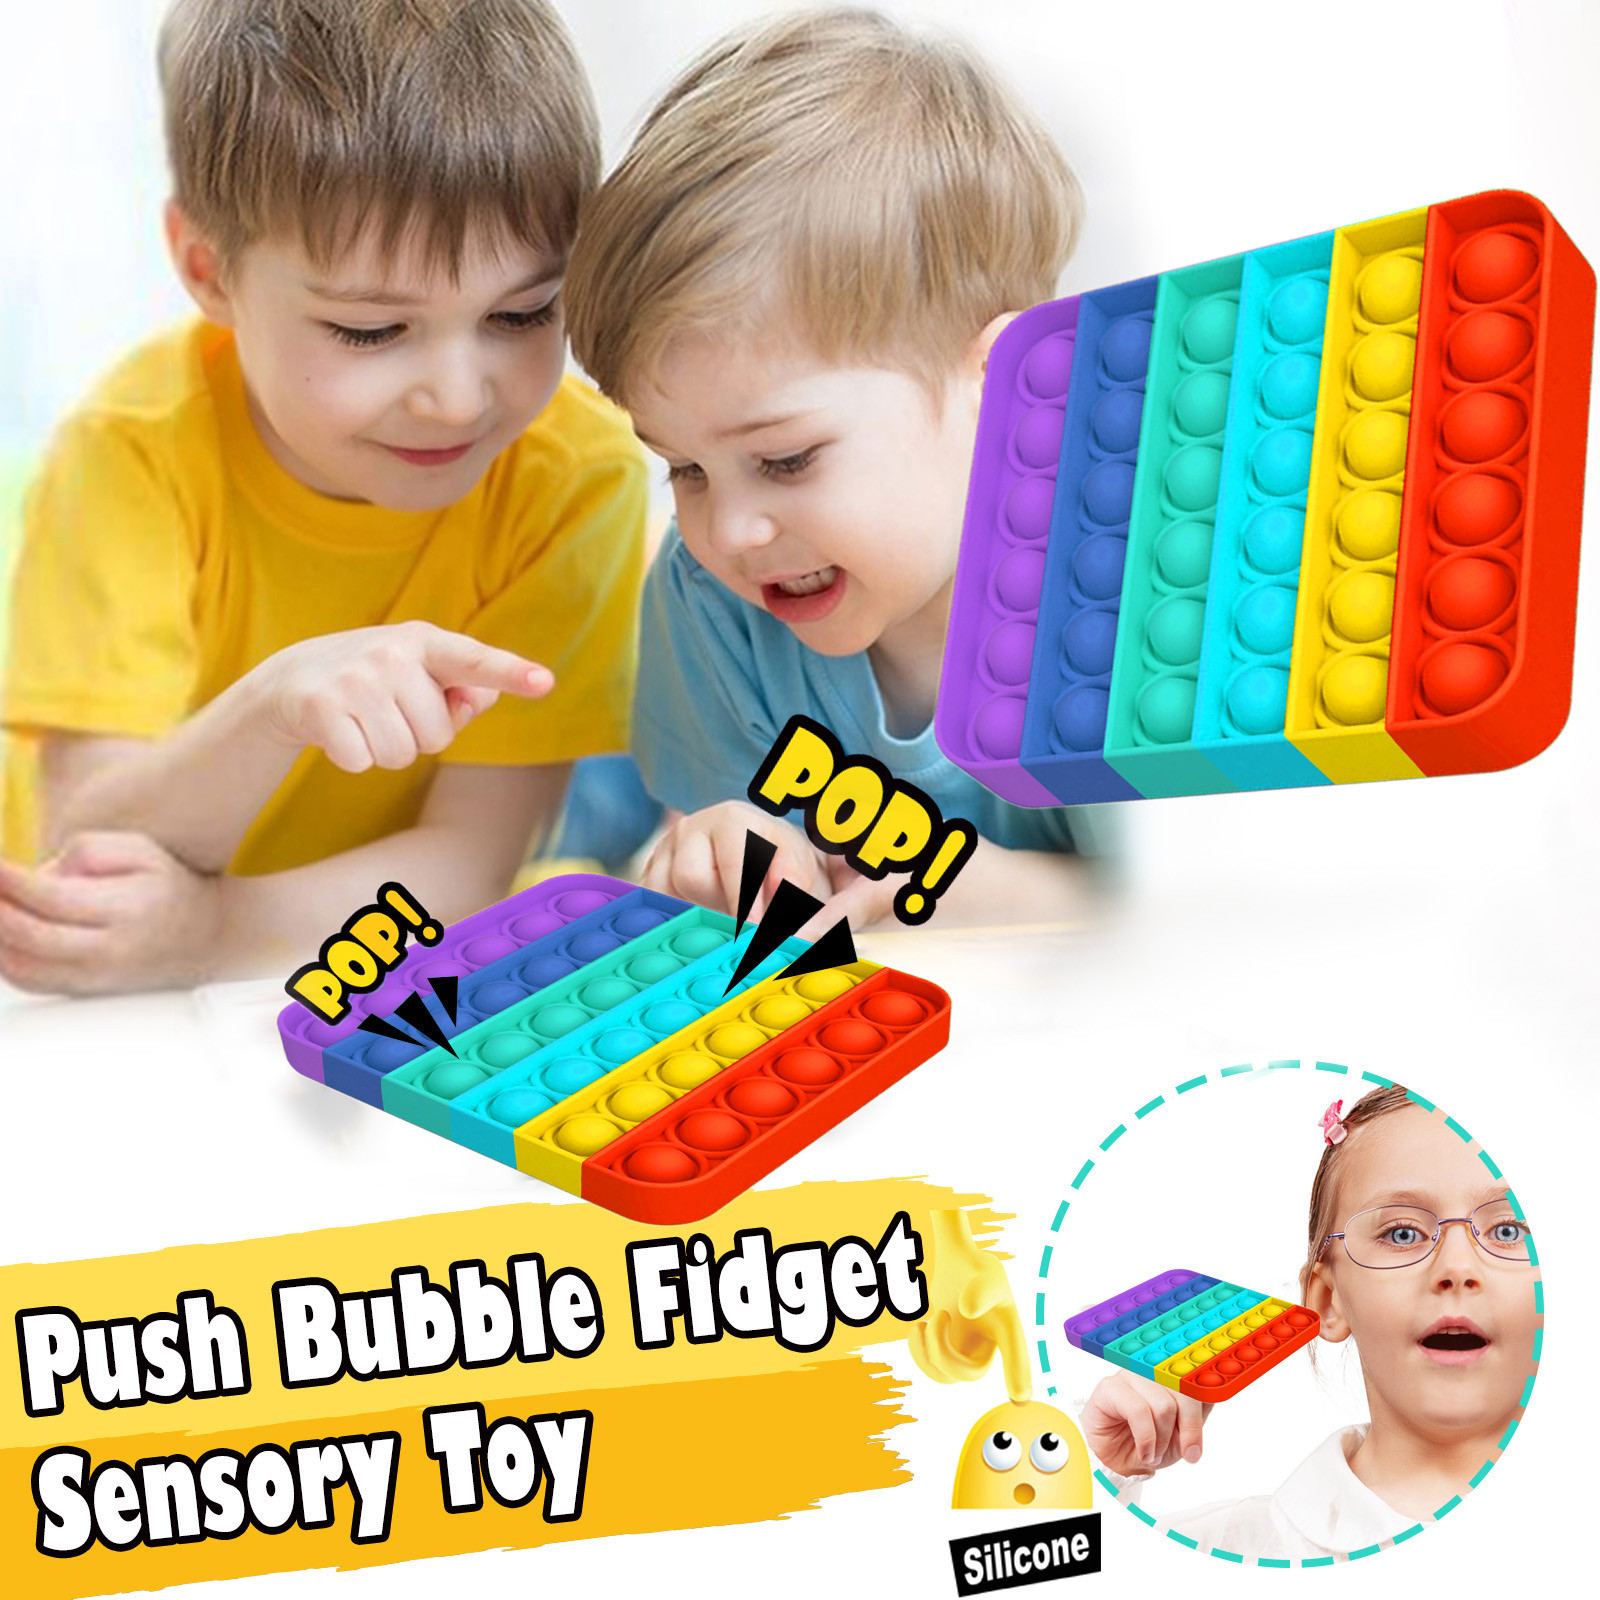 Fidget-Sensory-Toy Game-Stress Bubble Pops Squishy-Pops Special Needs Rainbow-Push Autisim img3